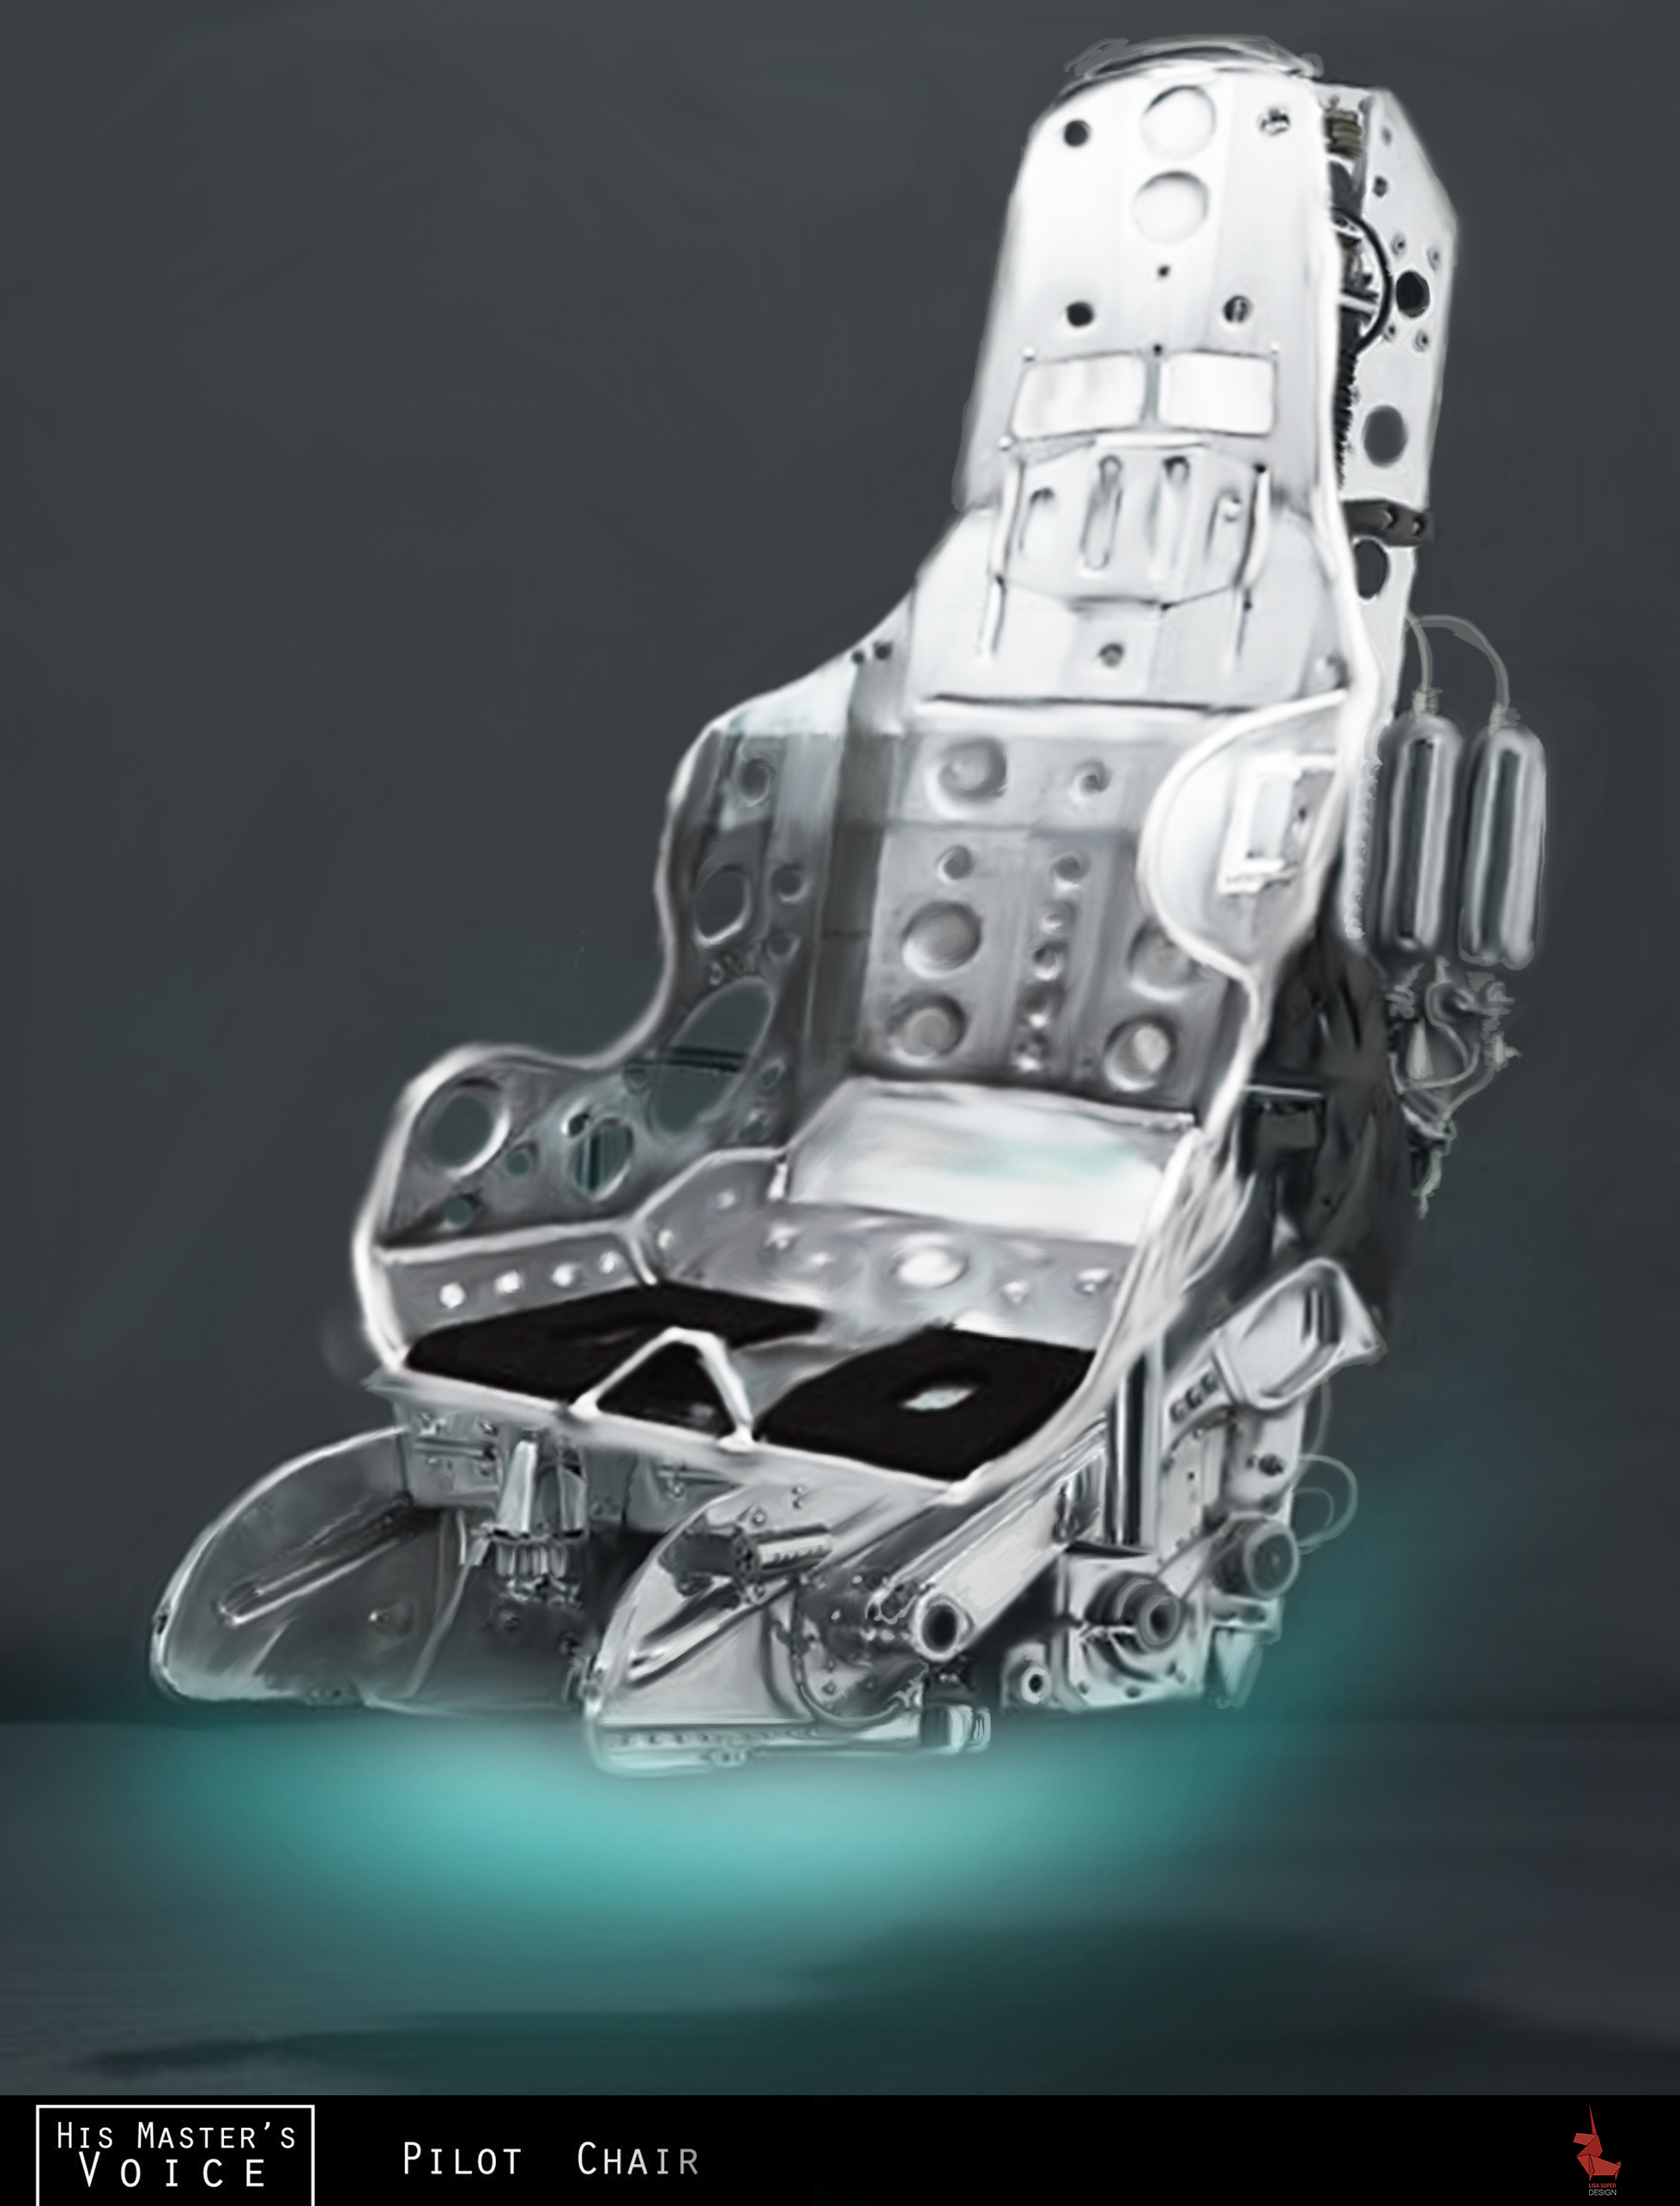 HMV Pilot chair concept